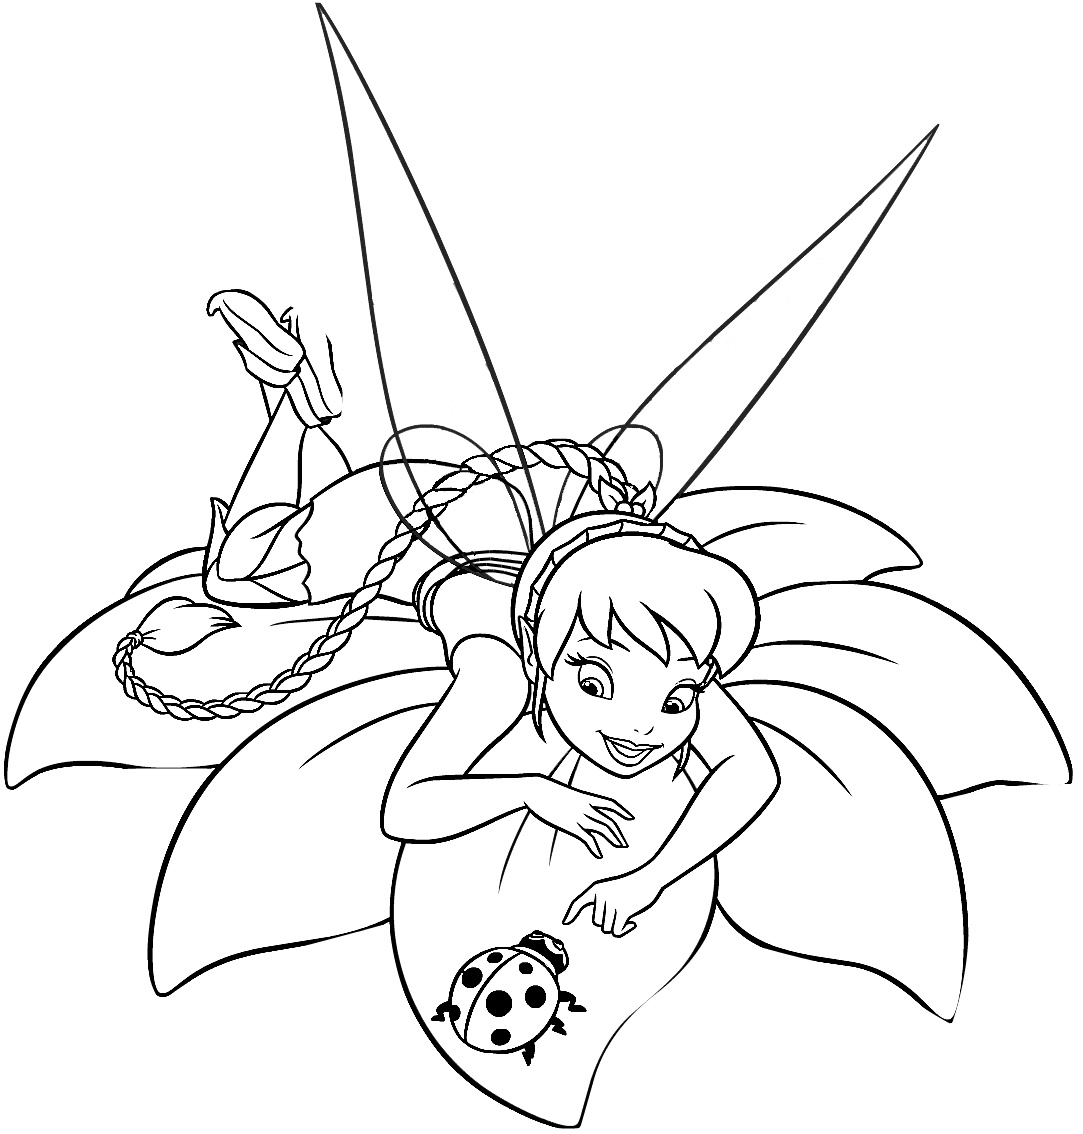 tinkerbell coloring tinkerbell coloring pages coloring tinkerbell